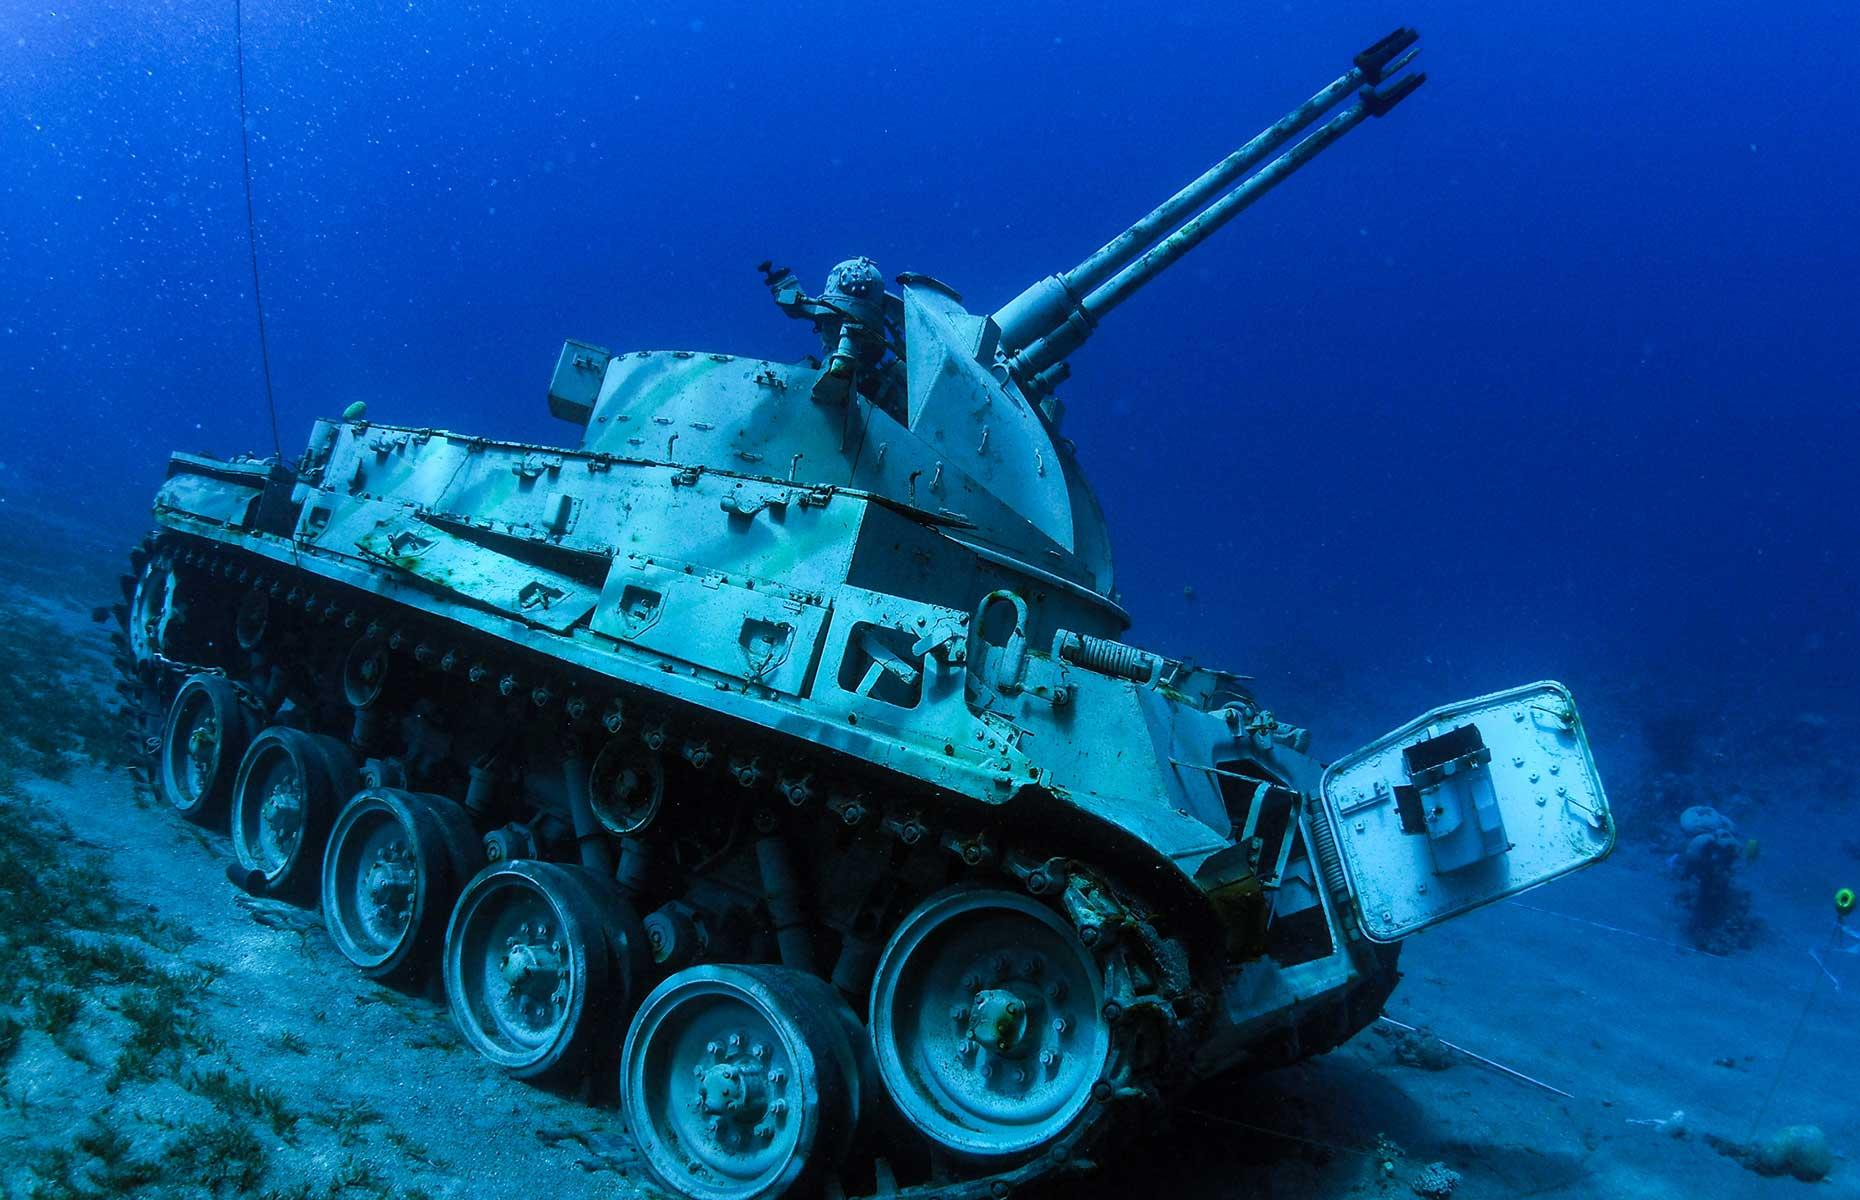 Slide 4 of 31: Just off the coast of Aqaba on Jordan's Red Sea coast is a surprising collection of military hardware. Tanks, a helicopter and a troop carrier have been sunk and arranged to mimic a battle formation. Lying 50 to 90 feet (15-28m) below the surface the museum opened in July 2019 and usually welcomes both divers and snorkelers. Much care was taken not to disturb marine life during the construction, with any hazardous material and chemicals removed.